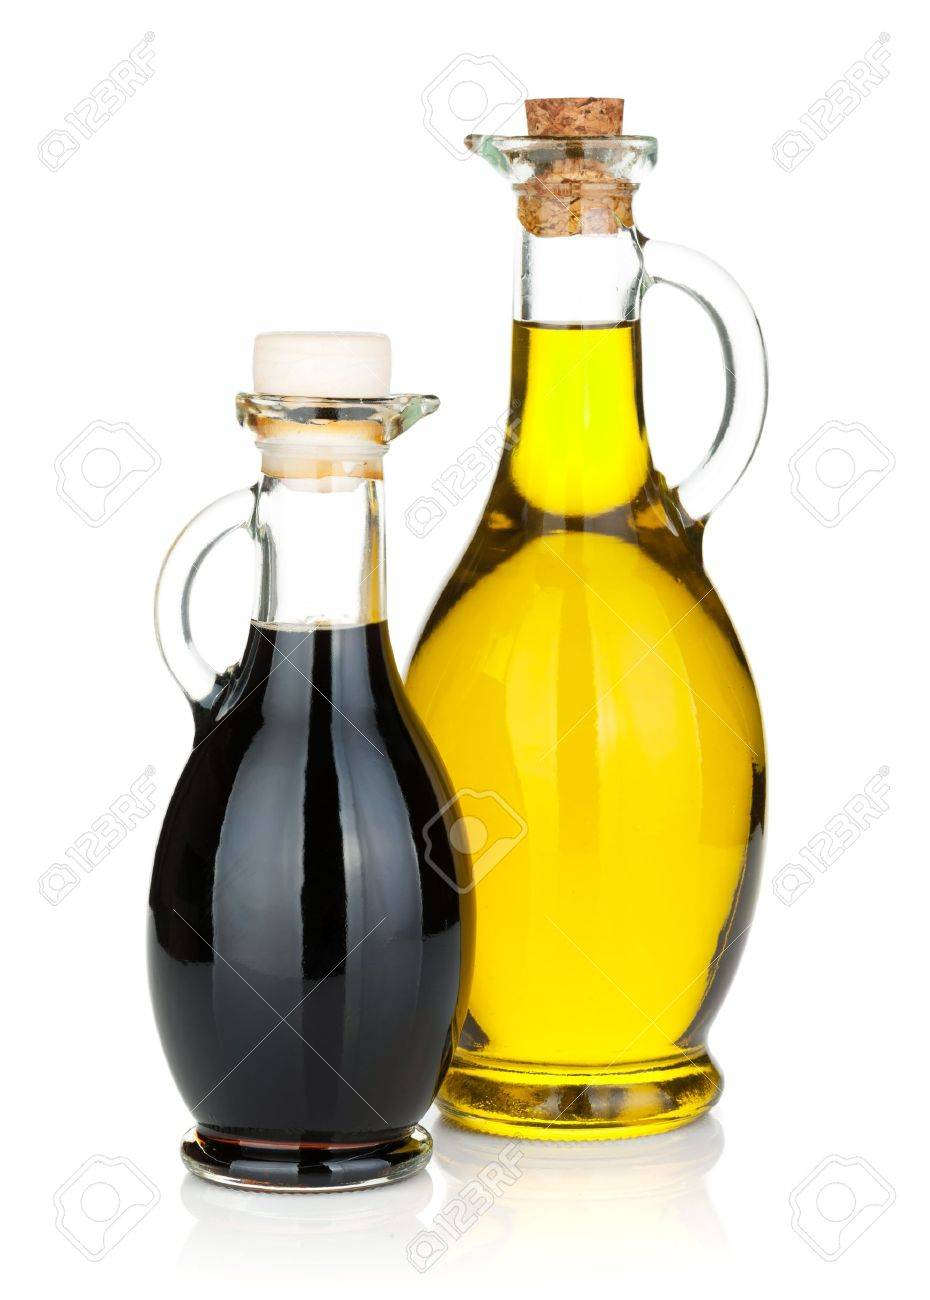 Fullsize Of Oil And Vinegar Bottles